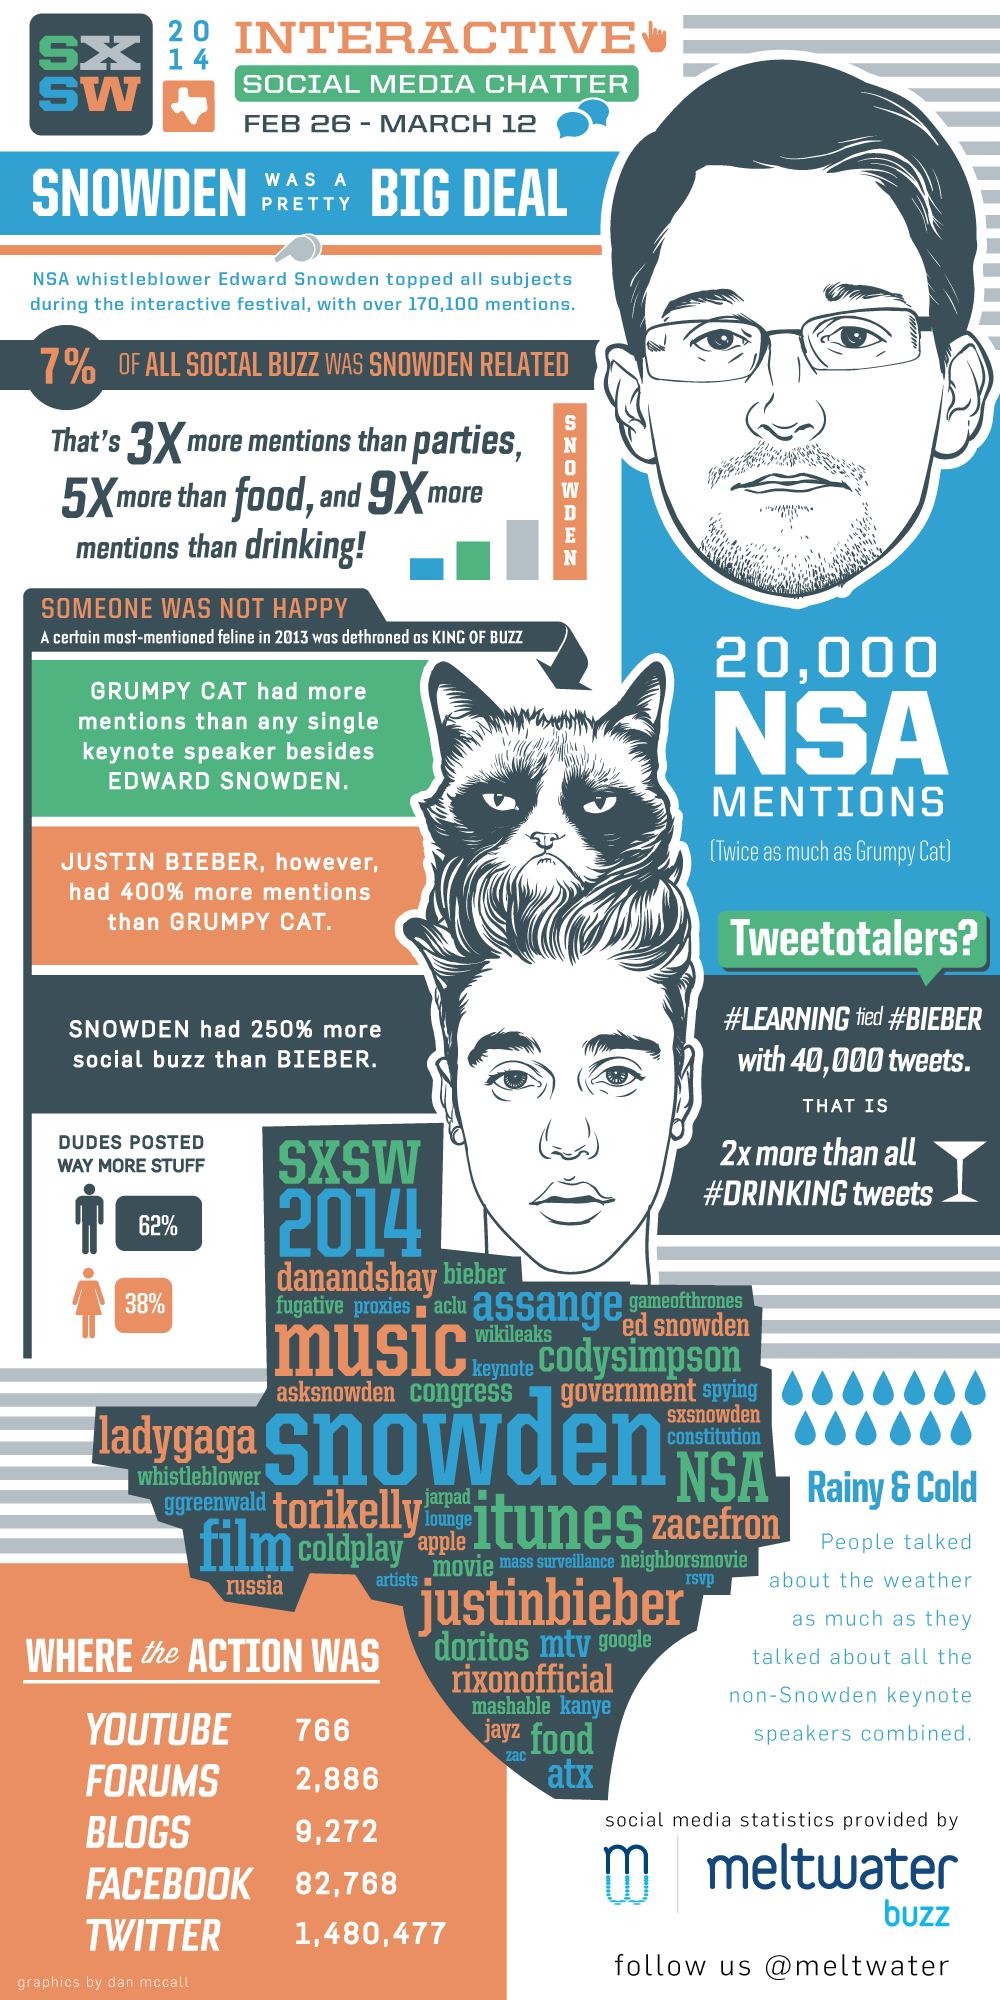 Snowden Was A Prettey Big Deal - SXSW 2014 Interactive Social Media Chatter - infographic